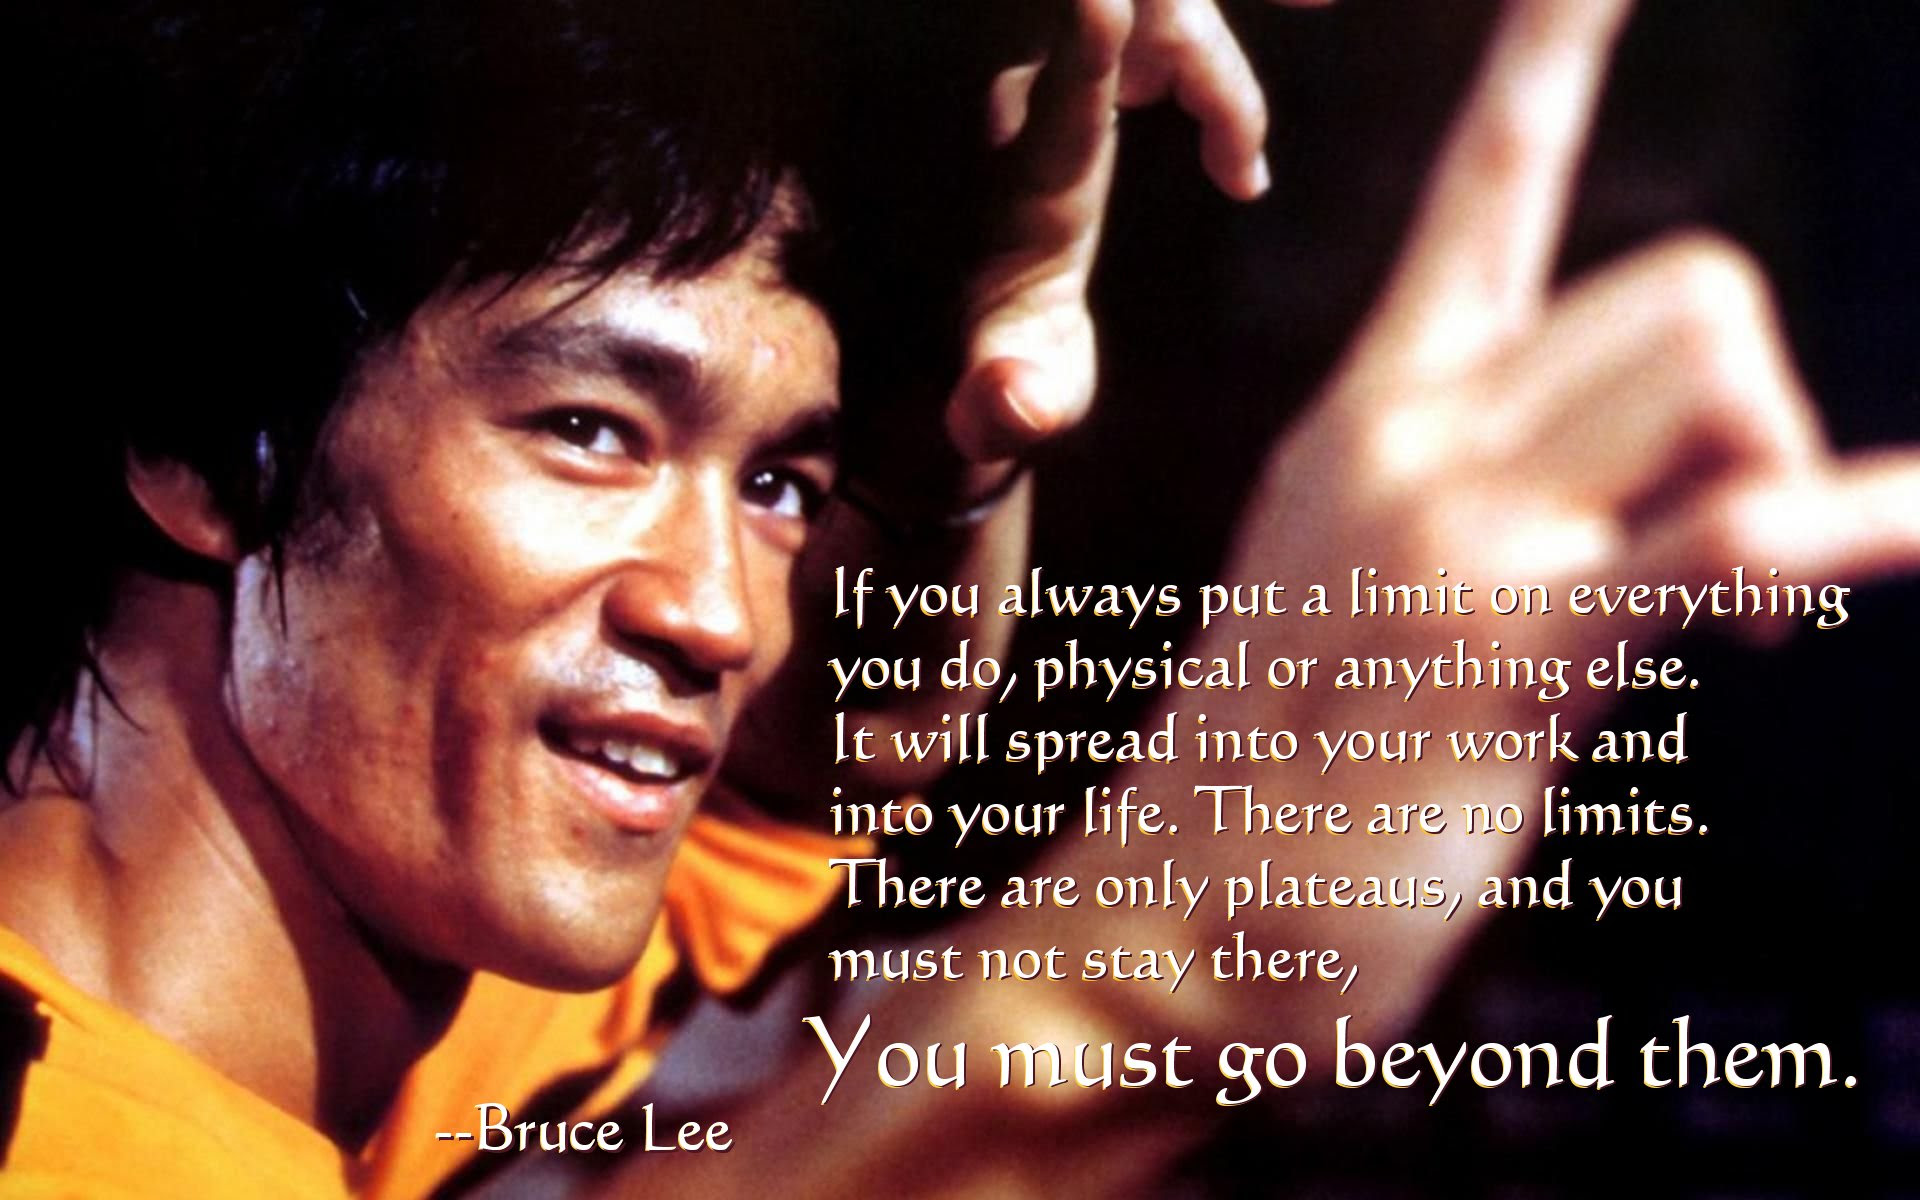 If You Always Put A Limit On Everything You Do Bruce Lee 19201200